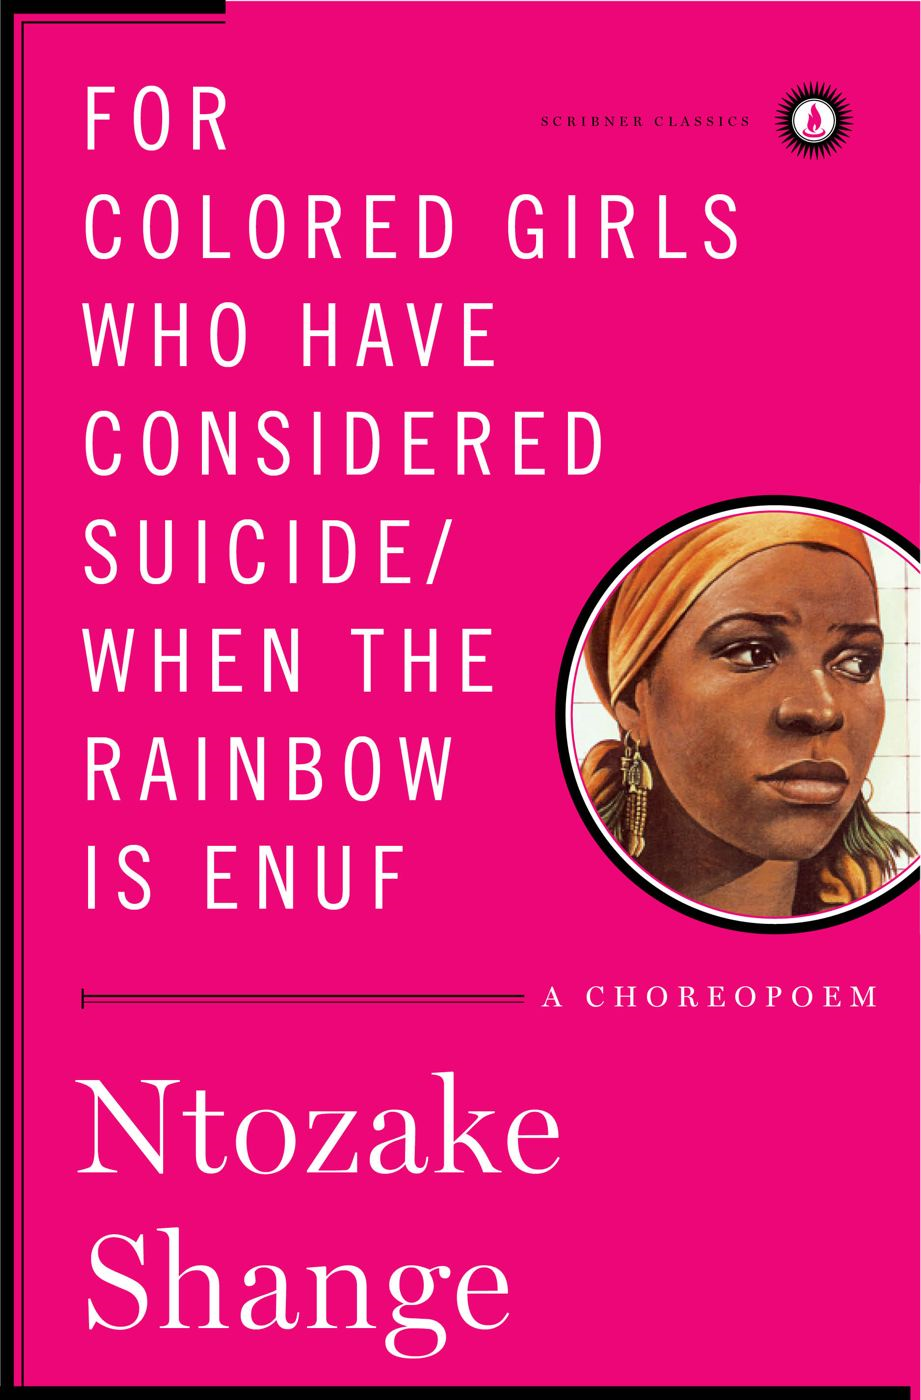 For colored girls who have considered suicide/When the rainbow is enuf By: Ntozake Shange